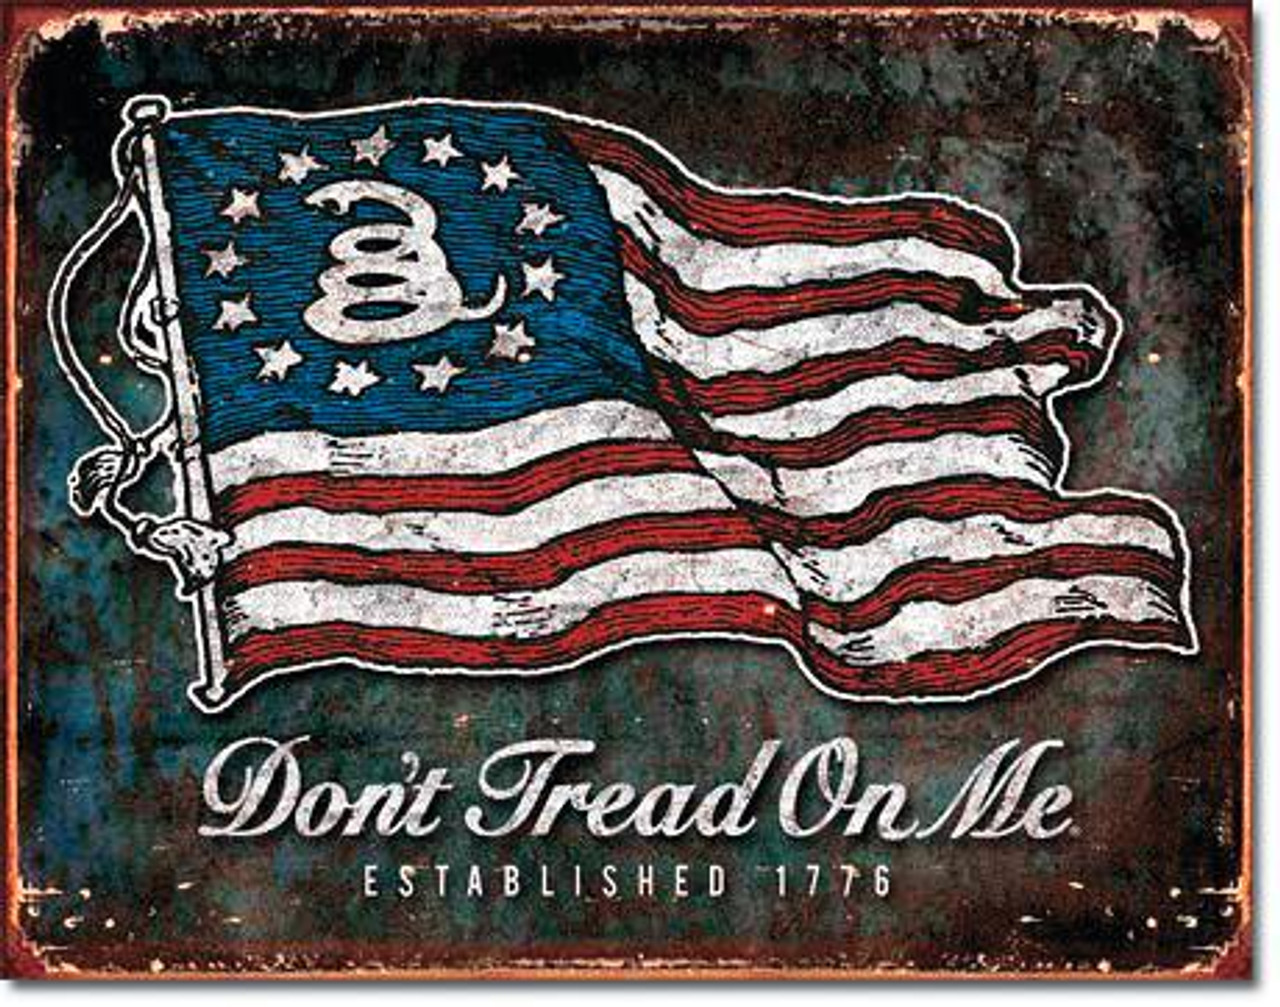 Don't Tread On Me 1776 Metal Sign (16 X 12.5)